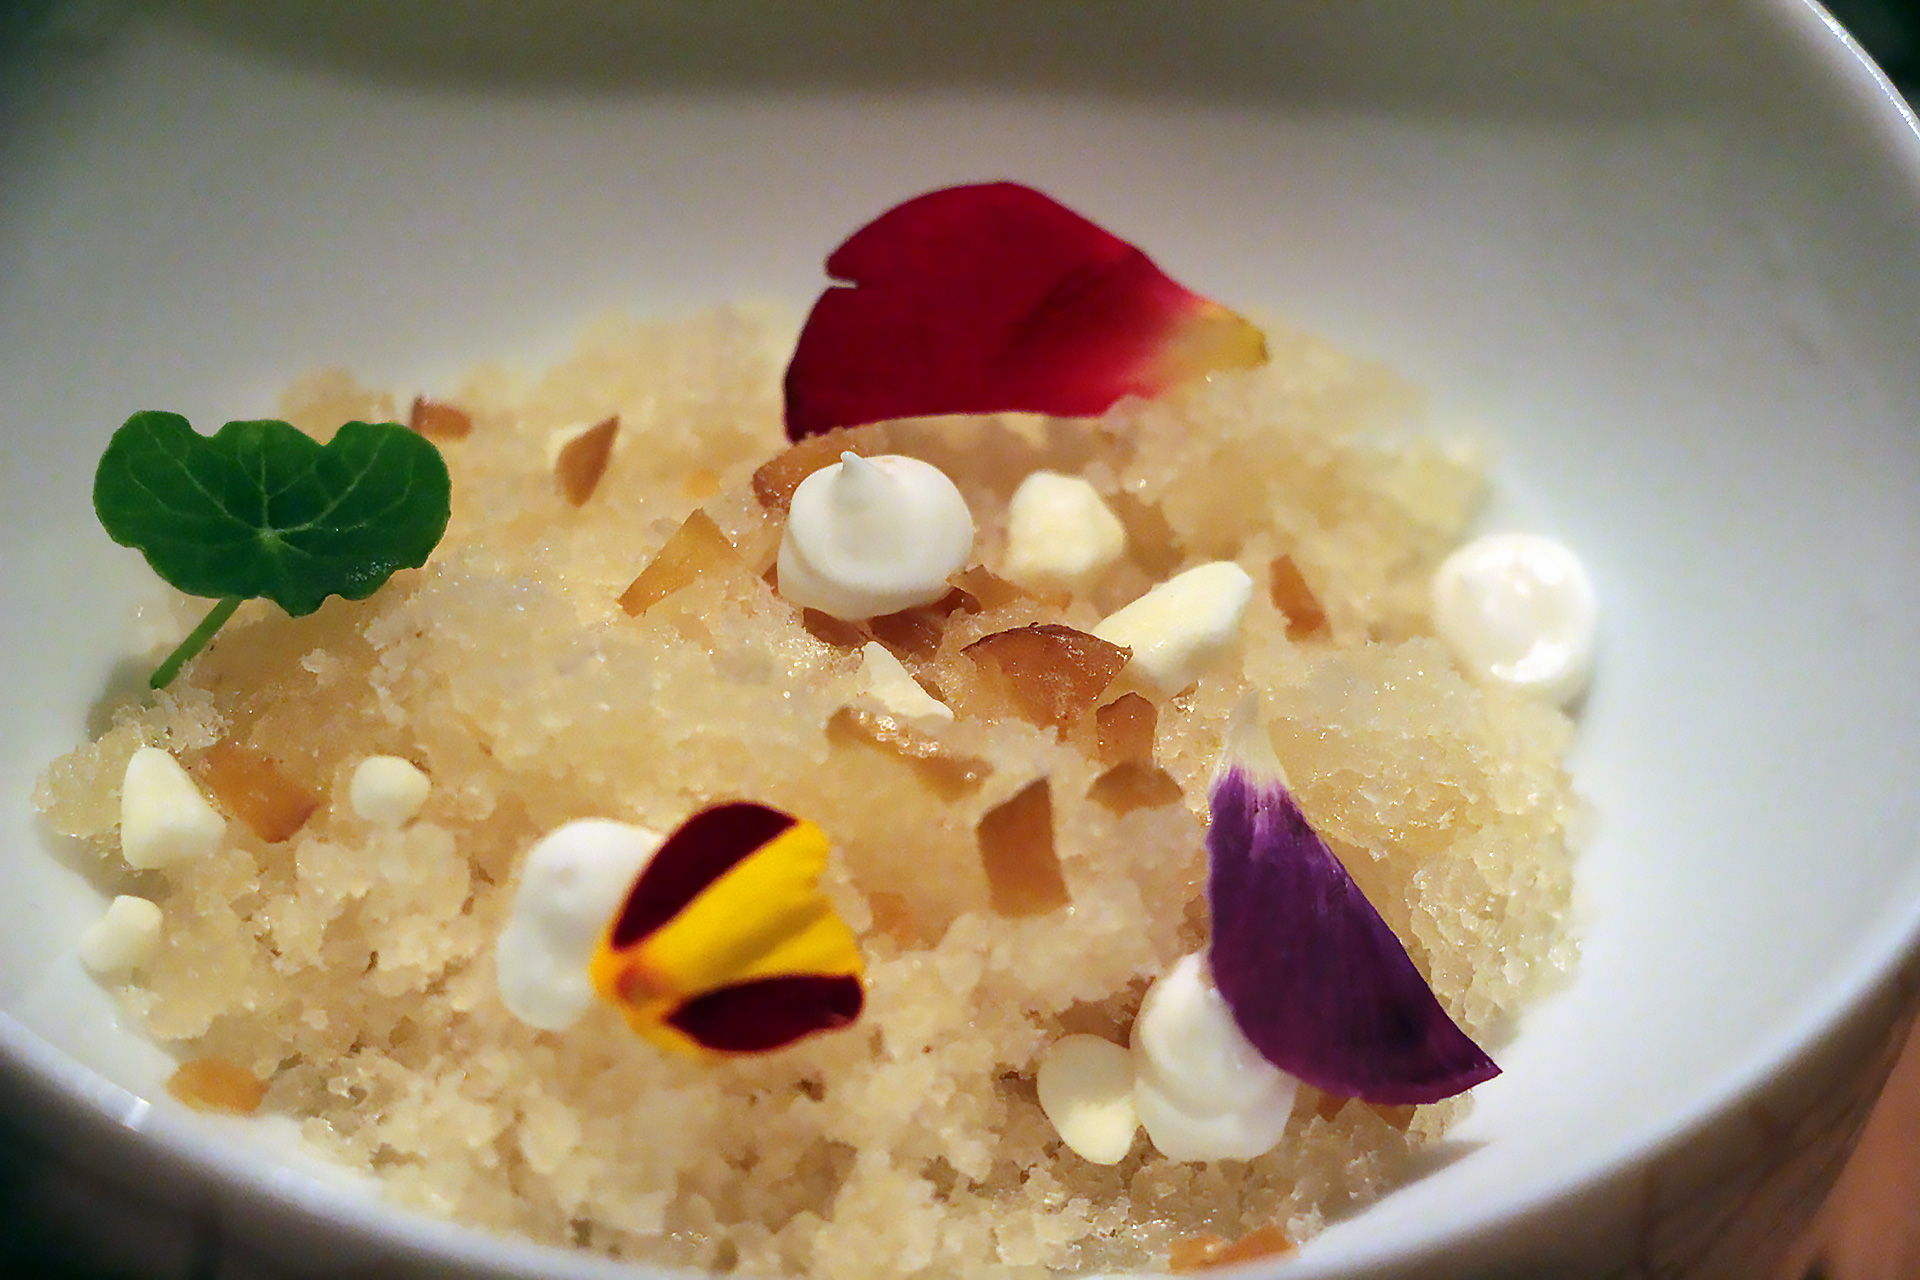 Chrysanthemum Granita - Yogurt, Preserved Plum